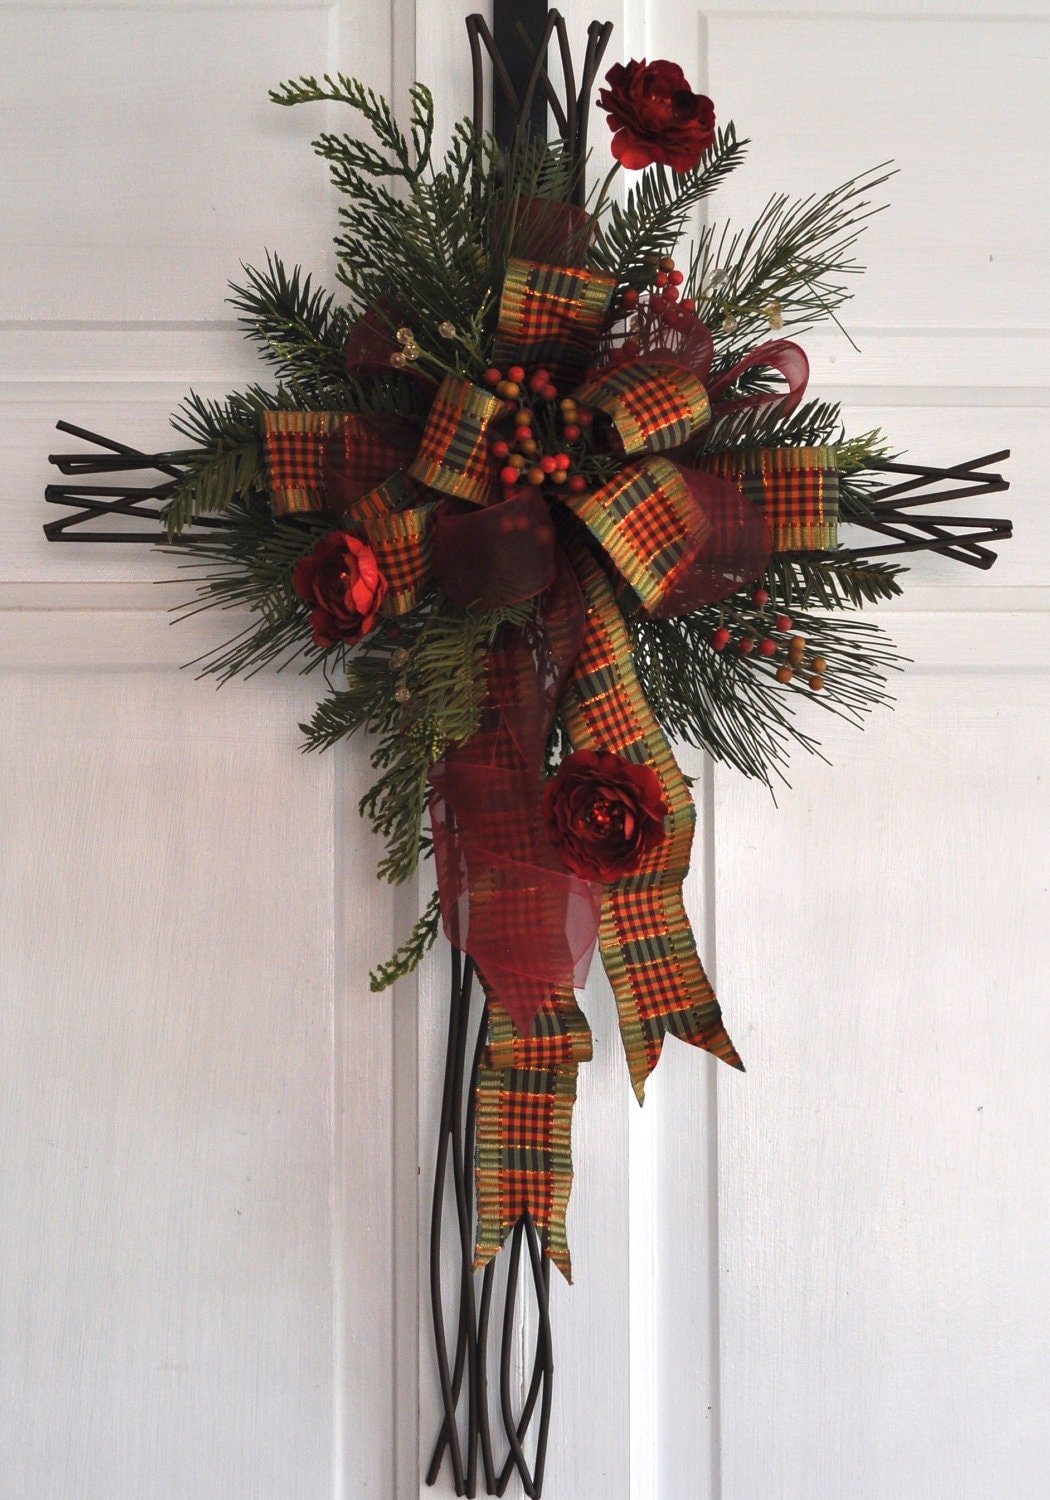 Christmas Cross Door Hanger Wall Decor Christian Hostess Gift